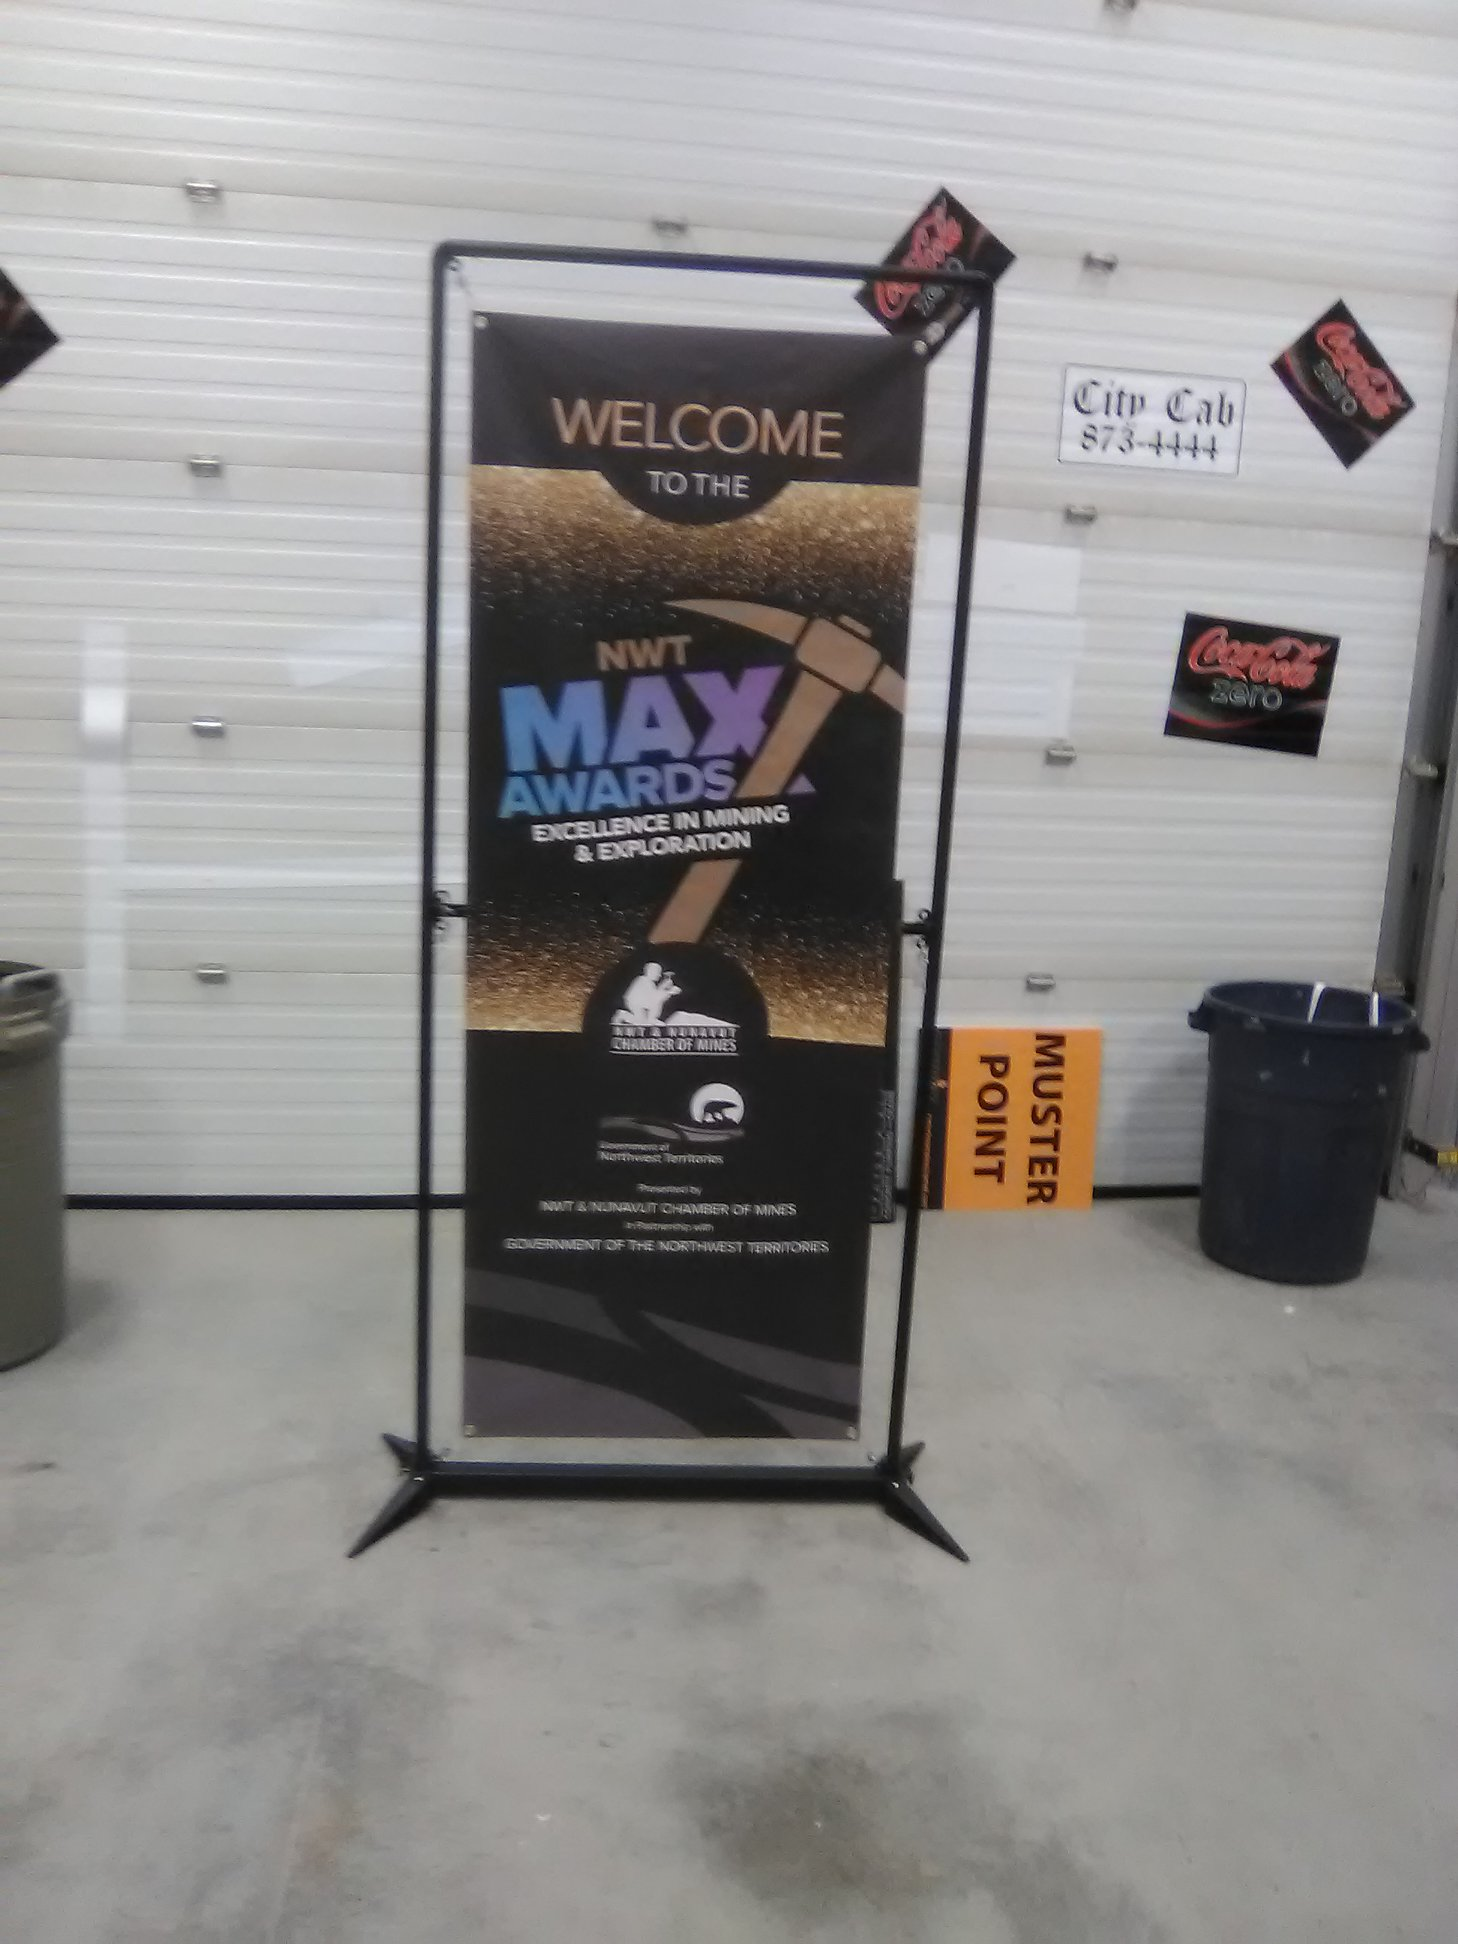 NWT Max Awards for Excellence in Mining and Exploration